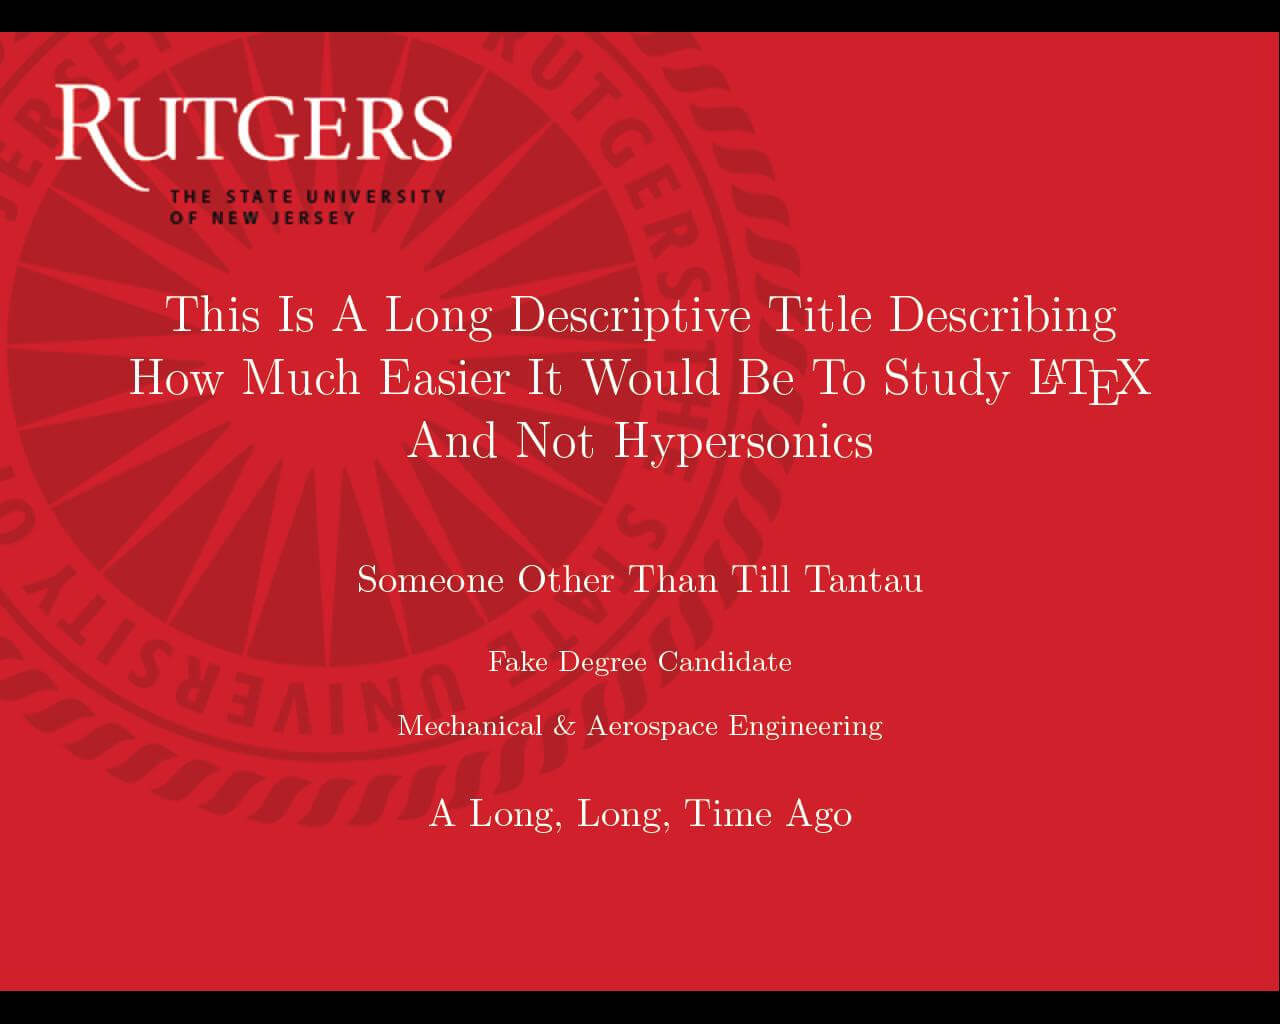 Beamer - Can I Specify Title Page Customization In A for Rutgers Powerpoint Template